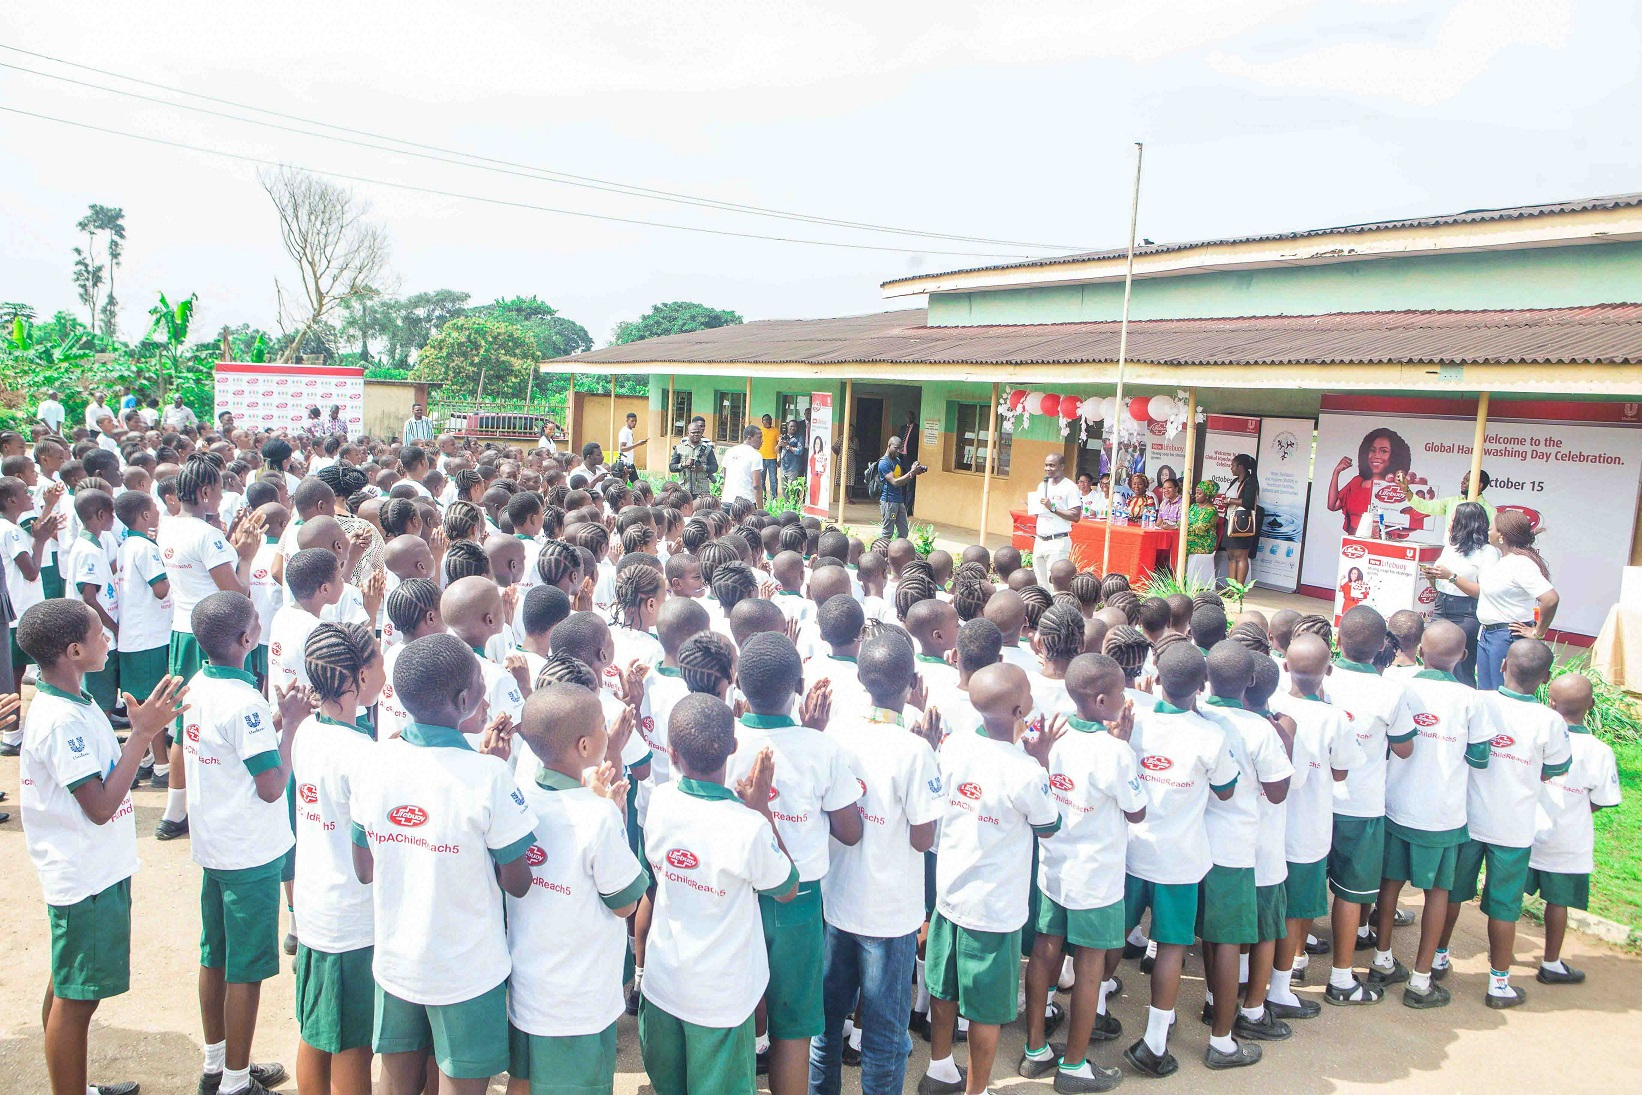 Lifebuoy Restates Commitment To Help A Child Reach 5 Campaign With Global Handwashing Day